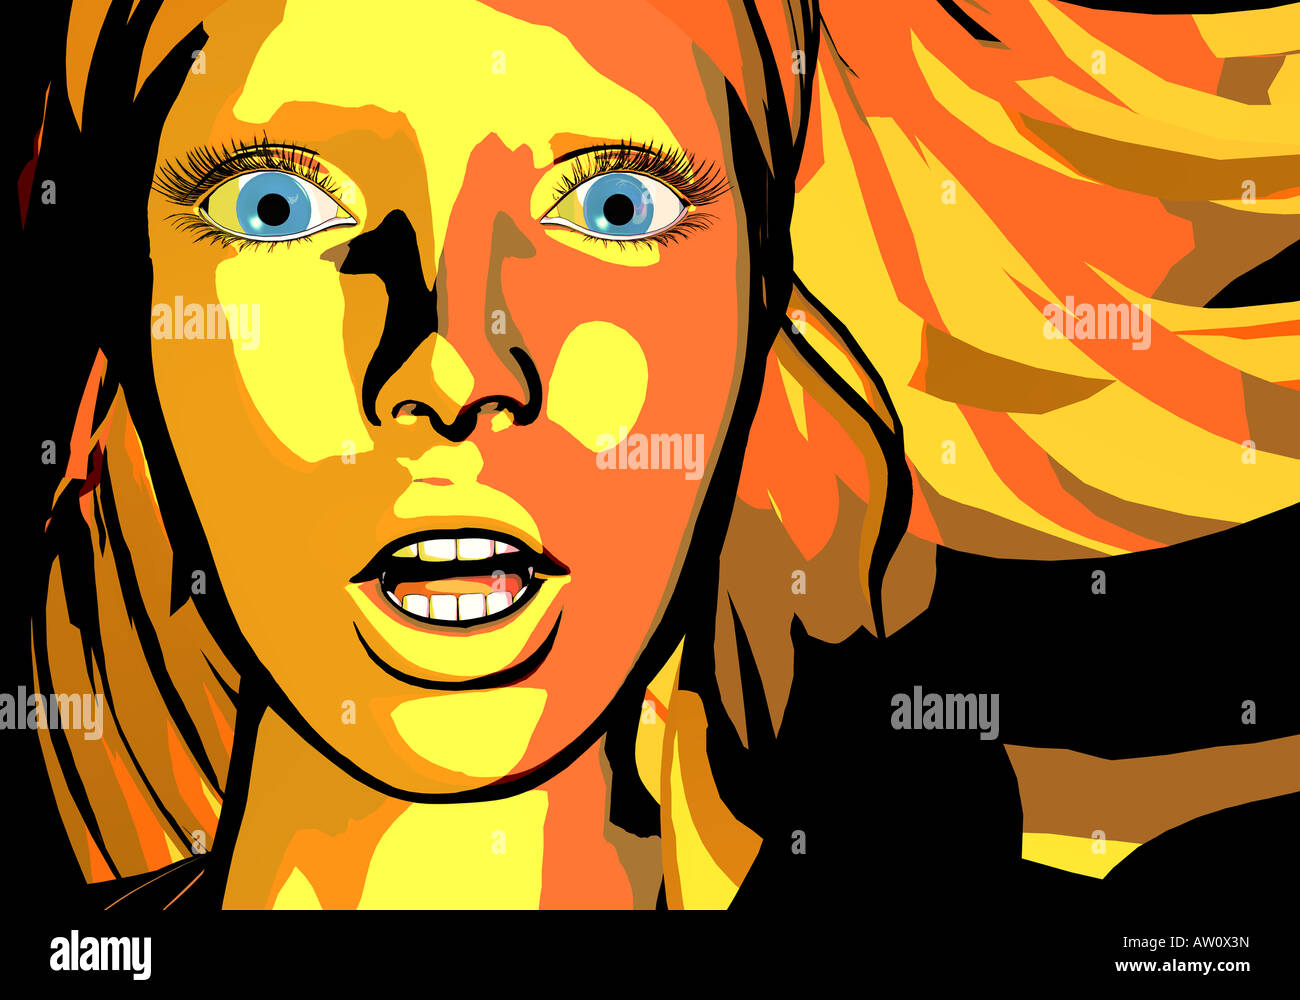 Illustration of a woman, close up Stock Photo